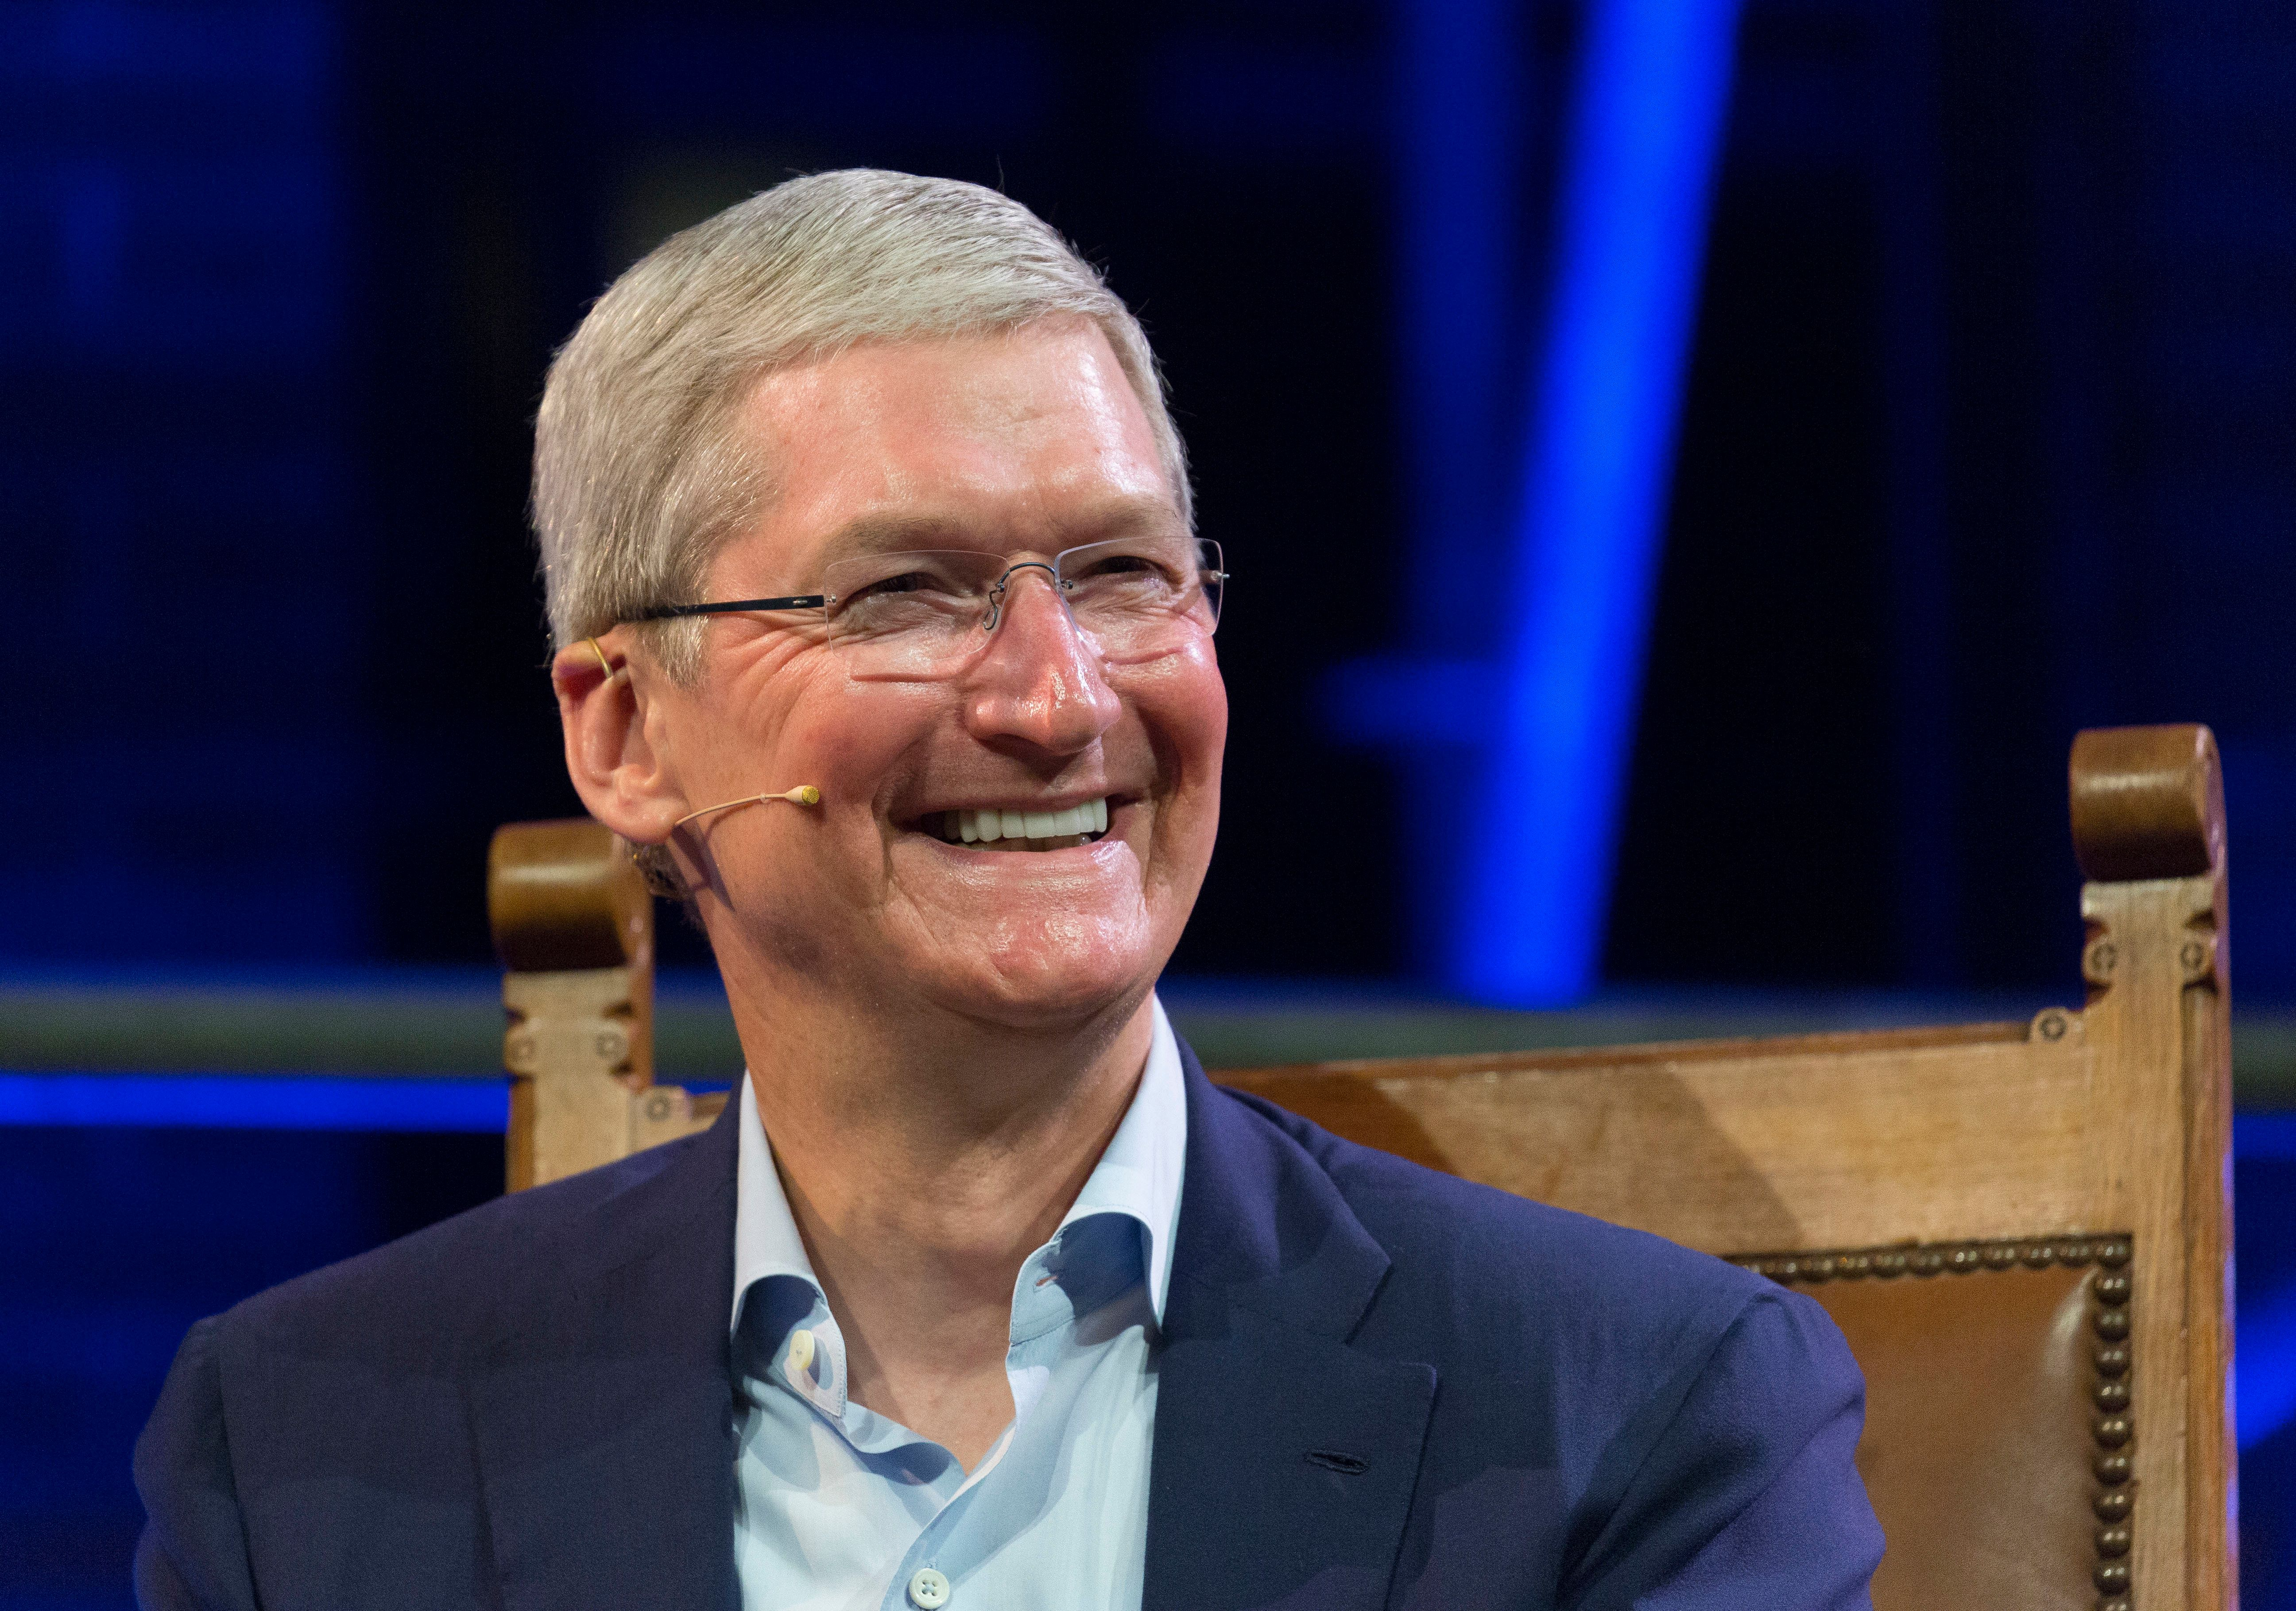 Apple CEO Tim Cook apparently does not want his company to be associated with Donald Trump.